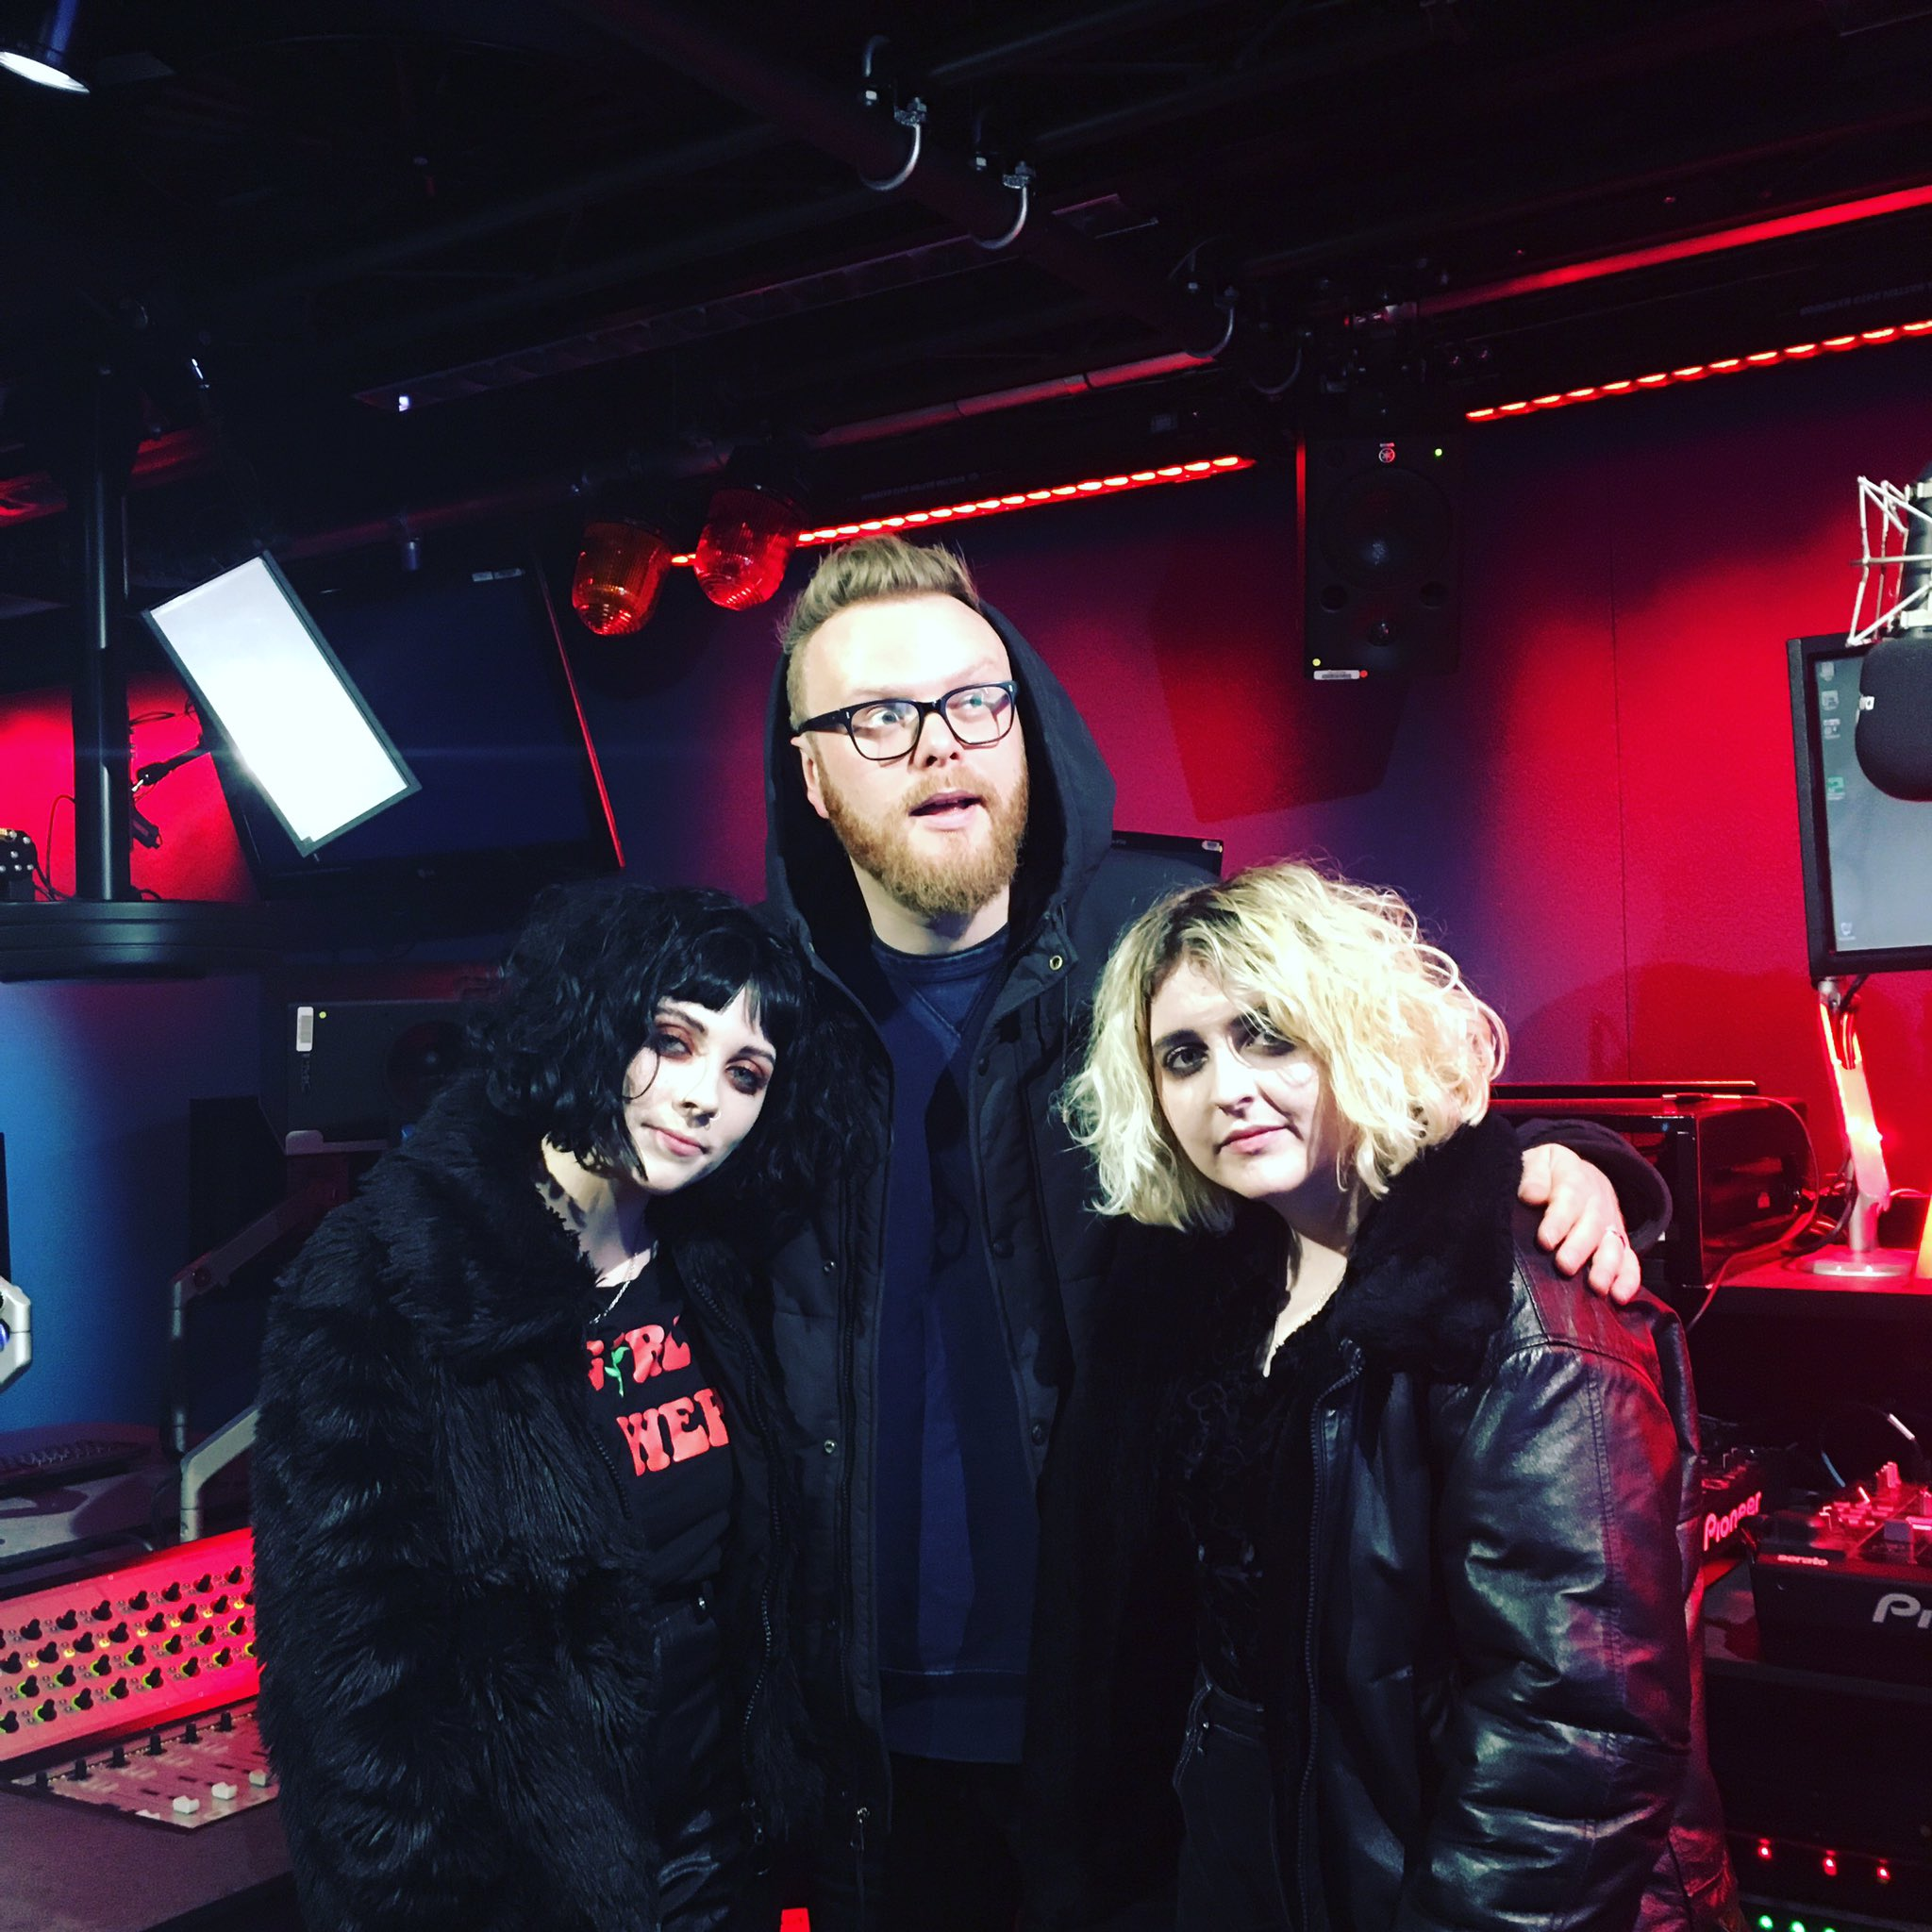 Ready for @palewaves in session tonight @BBCR1. Lock in! #palewaves https://t.co/x7zoGfjcO0